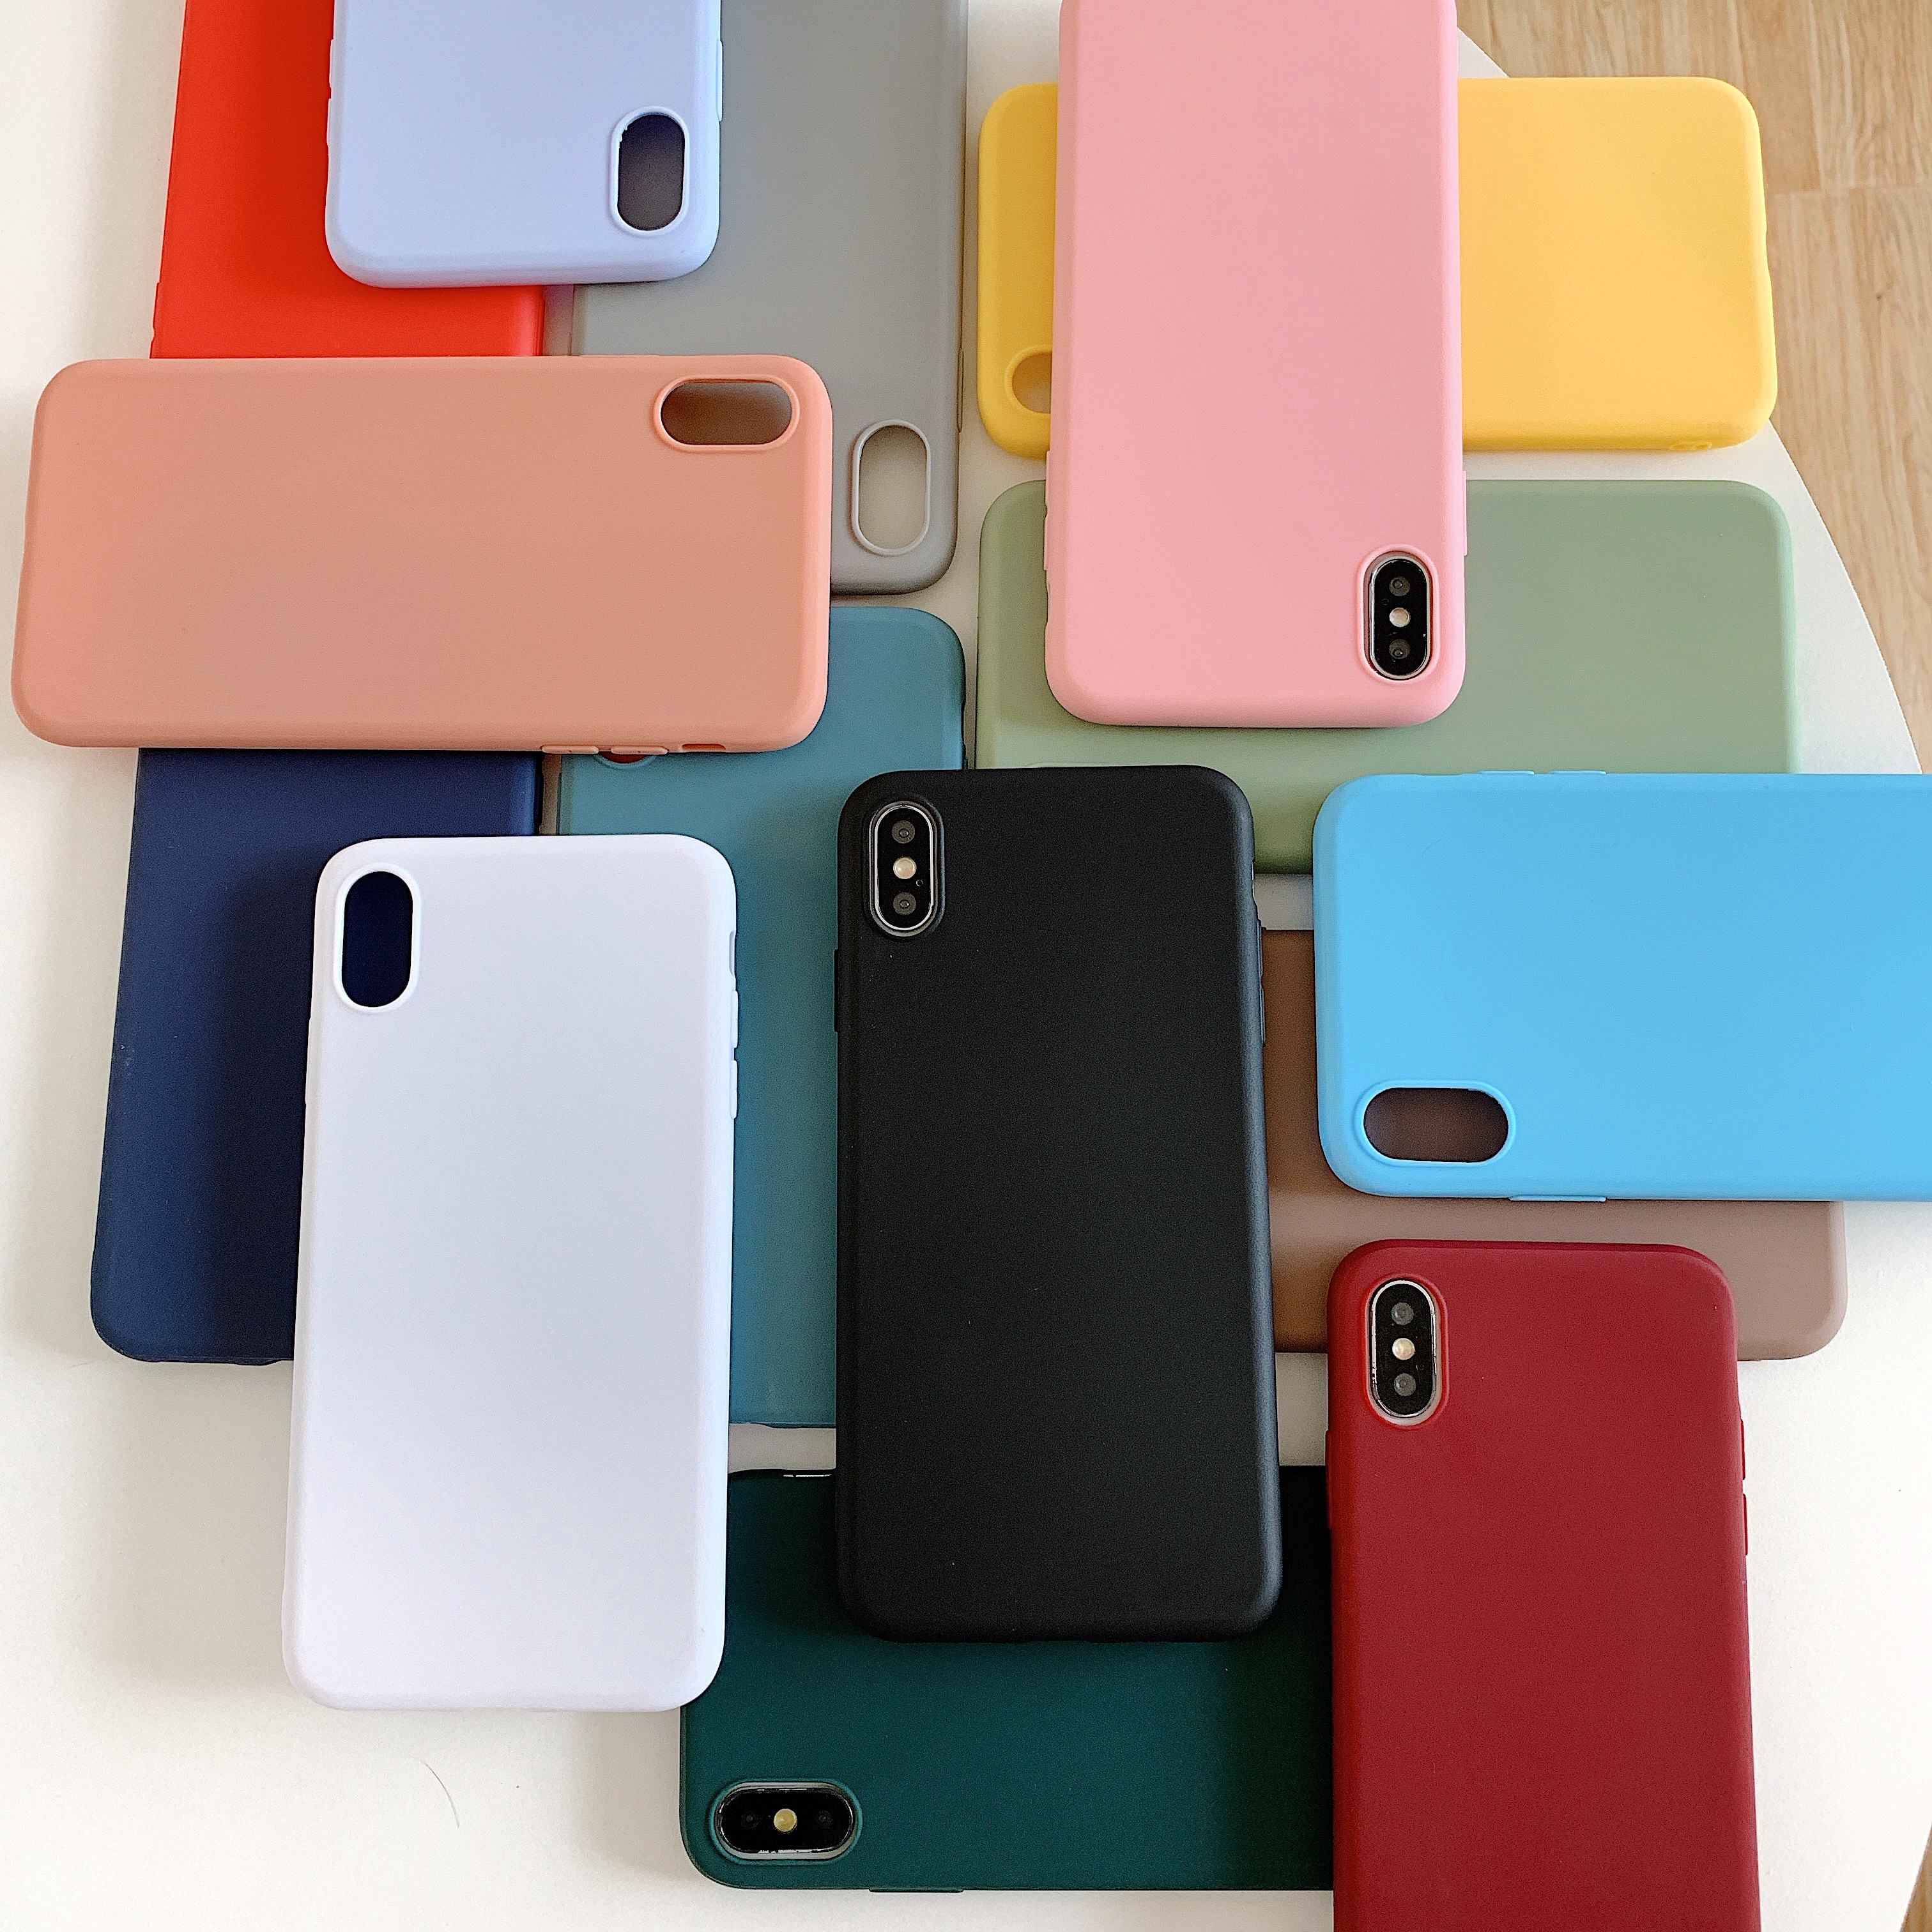 Luxury Candy Soft silicone cover For <font><b>OPPO</b></font> A37 A57 <font><b>A39</b></font> A59 A71 A73 F5 A77 A79 A83 A1 phone <font><b>case</b></font> image